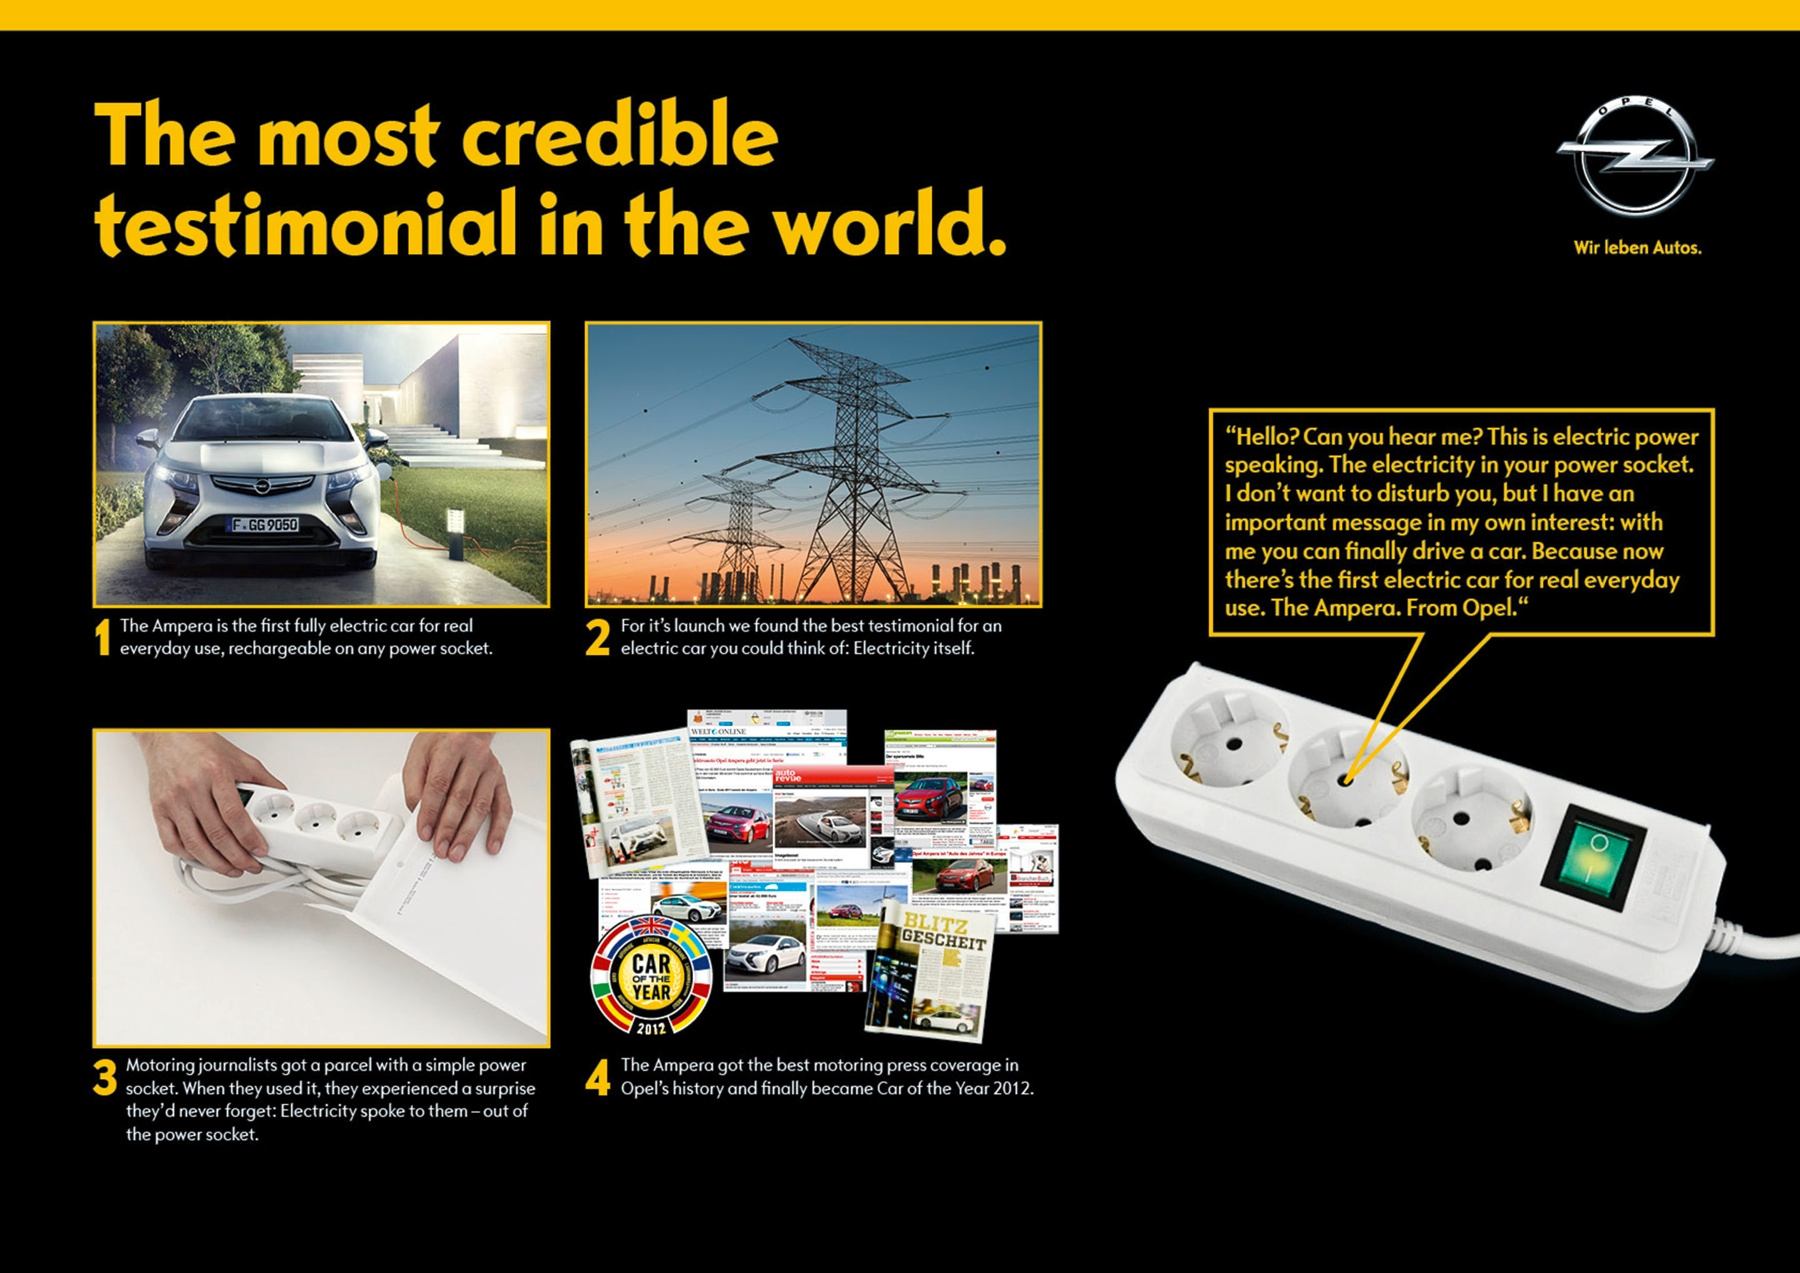 Opel_Ampera_The_Most_Credible_Testimonial_In_The_World_ibelieveinadv.jpg